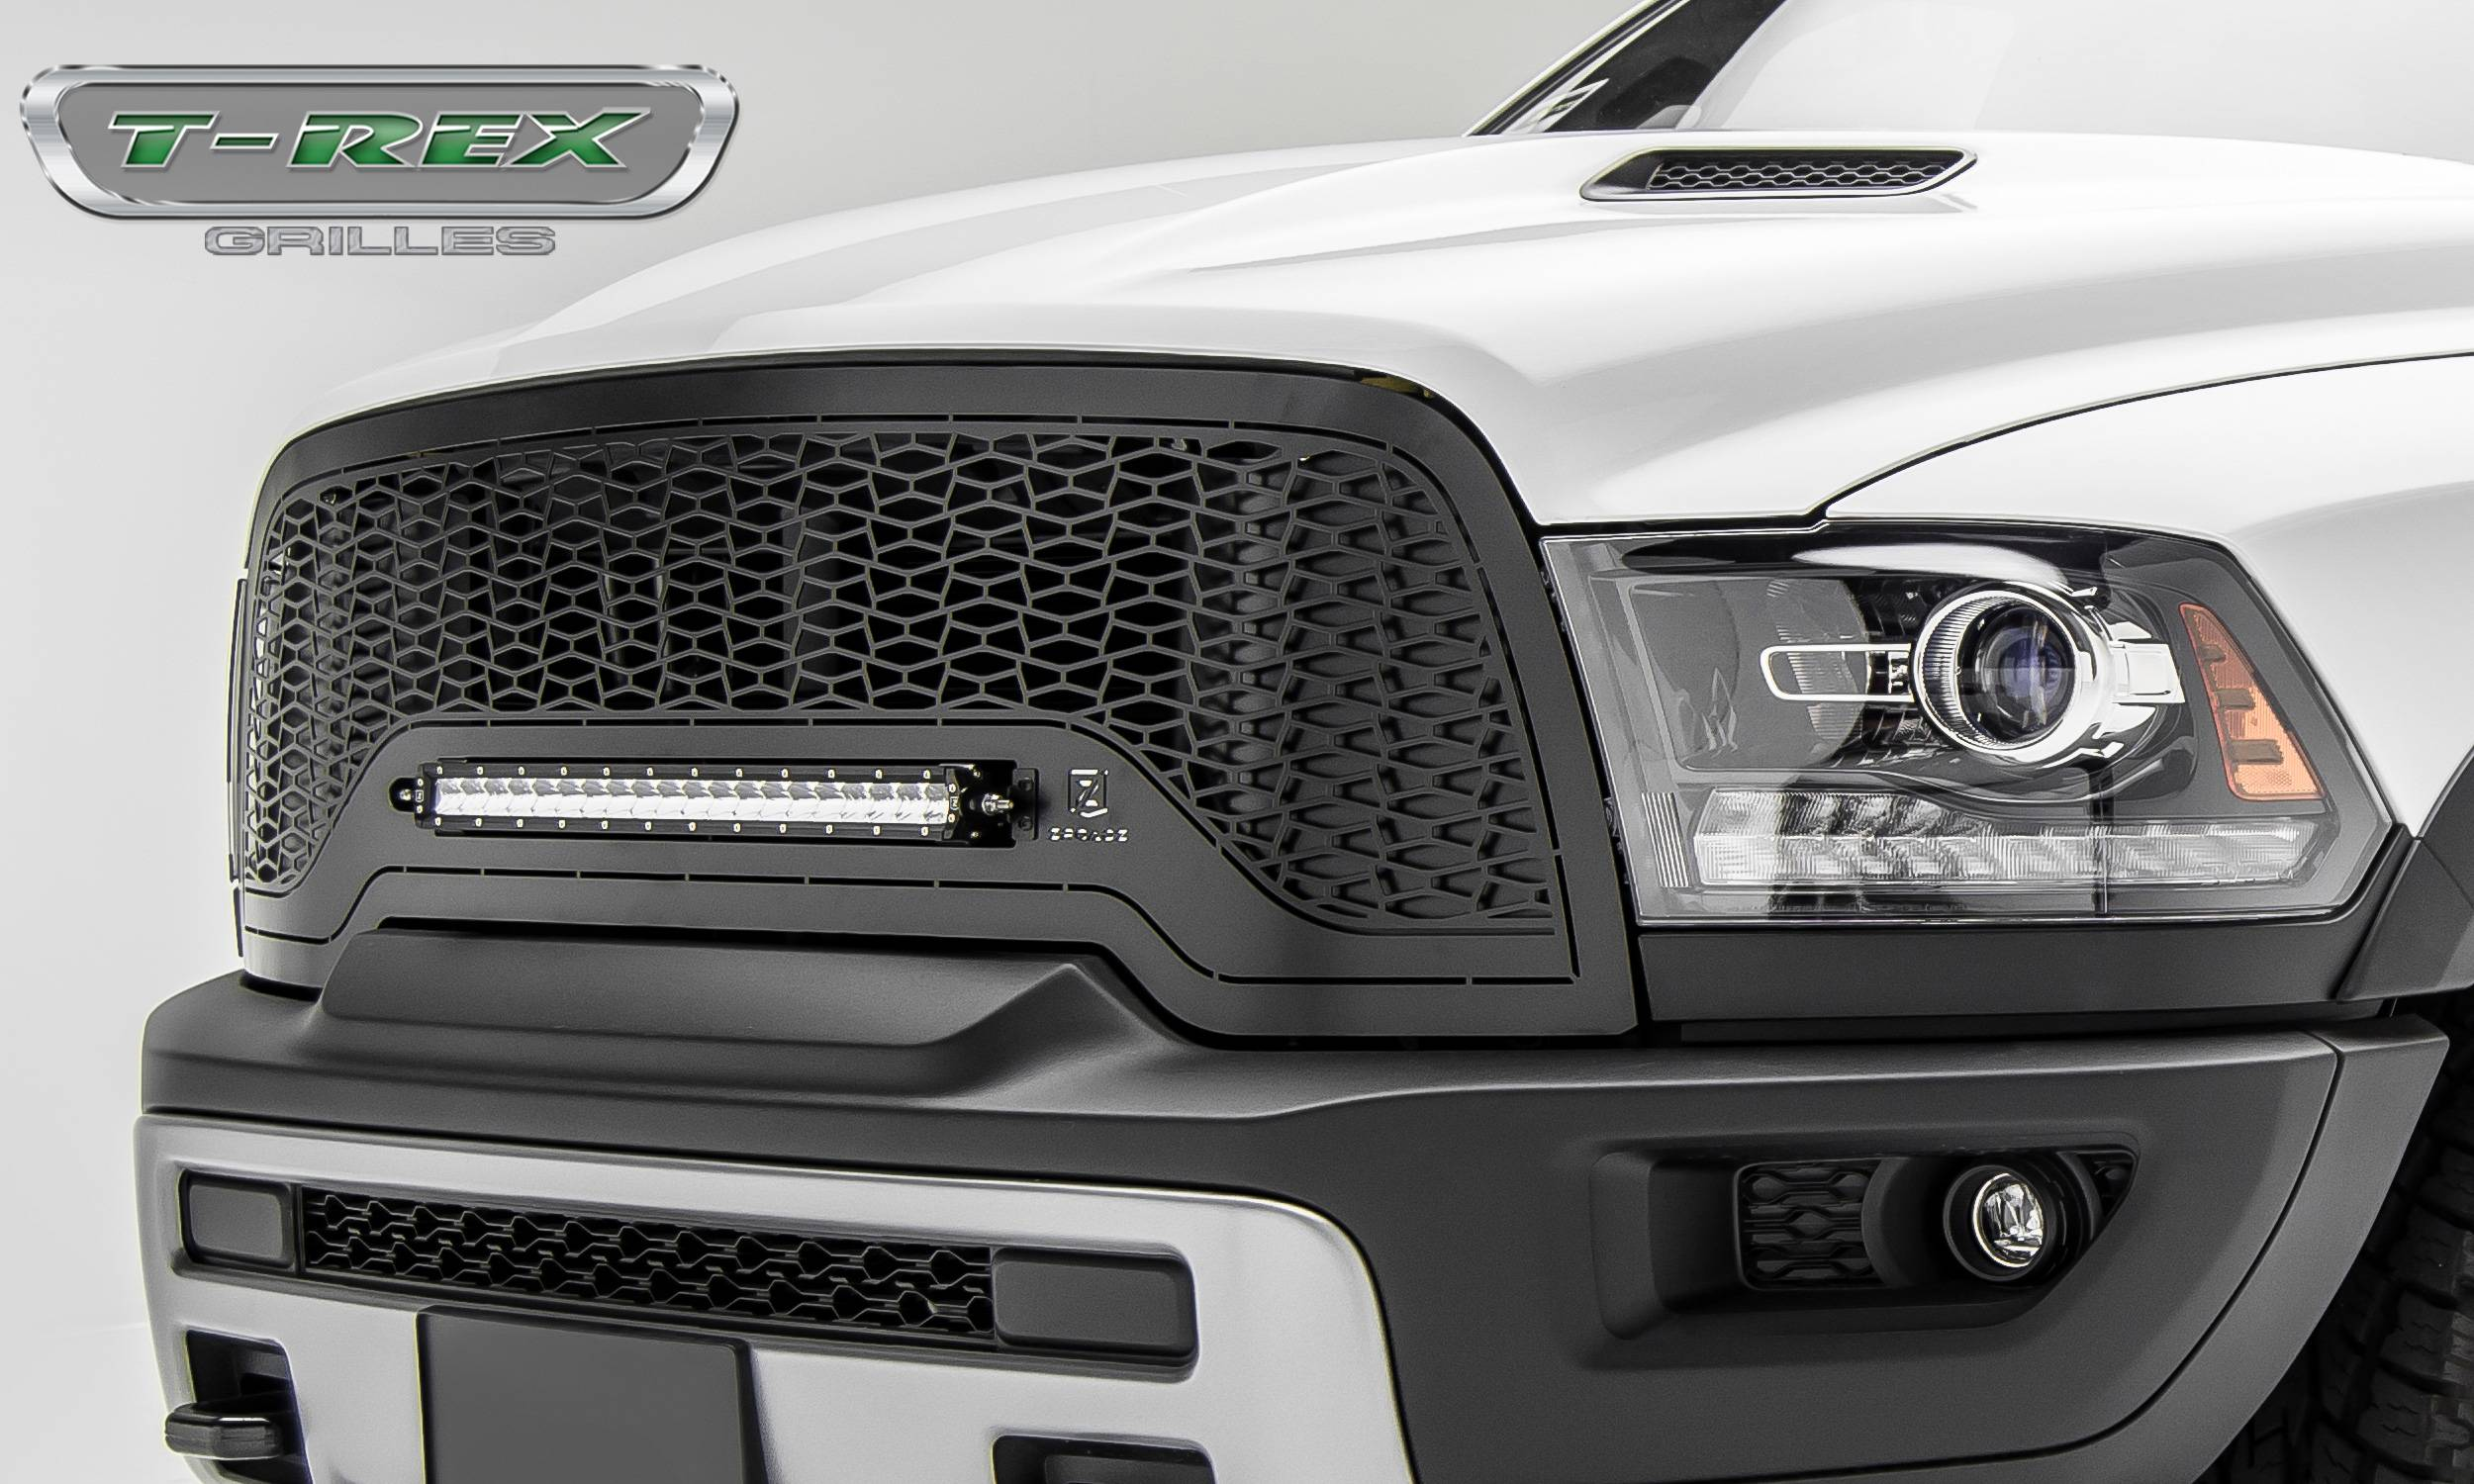 T-REX Ram Rebel - ZROADZ Series - Main Grille Replacement w/ One 20 Inch Slim Line Single Row LED Light Bar - Includes Universal Wiring Harness - Part #Z314551